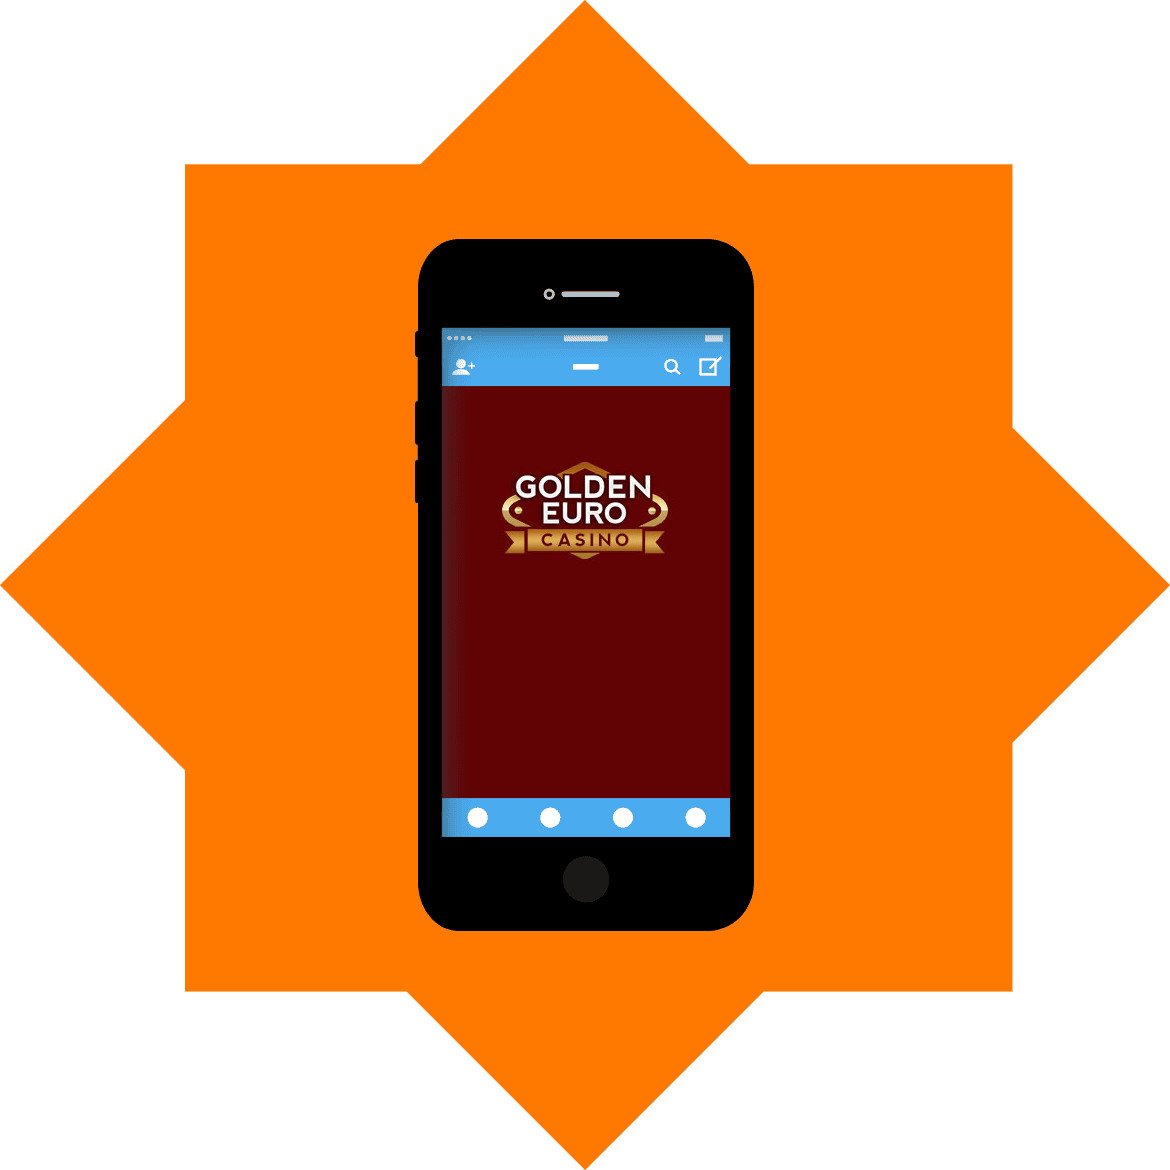 Golden Euro Casino - Mobile friendly